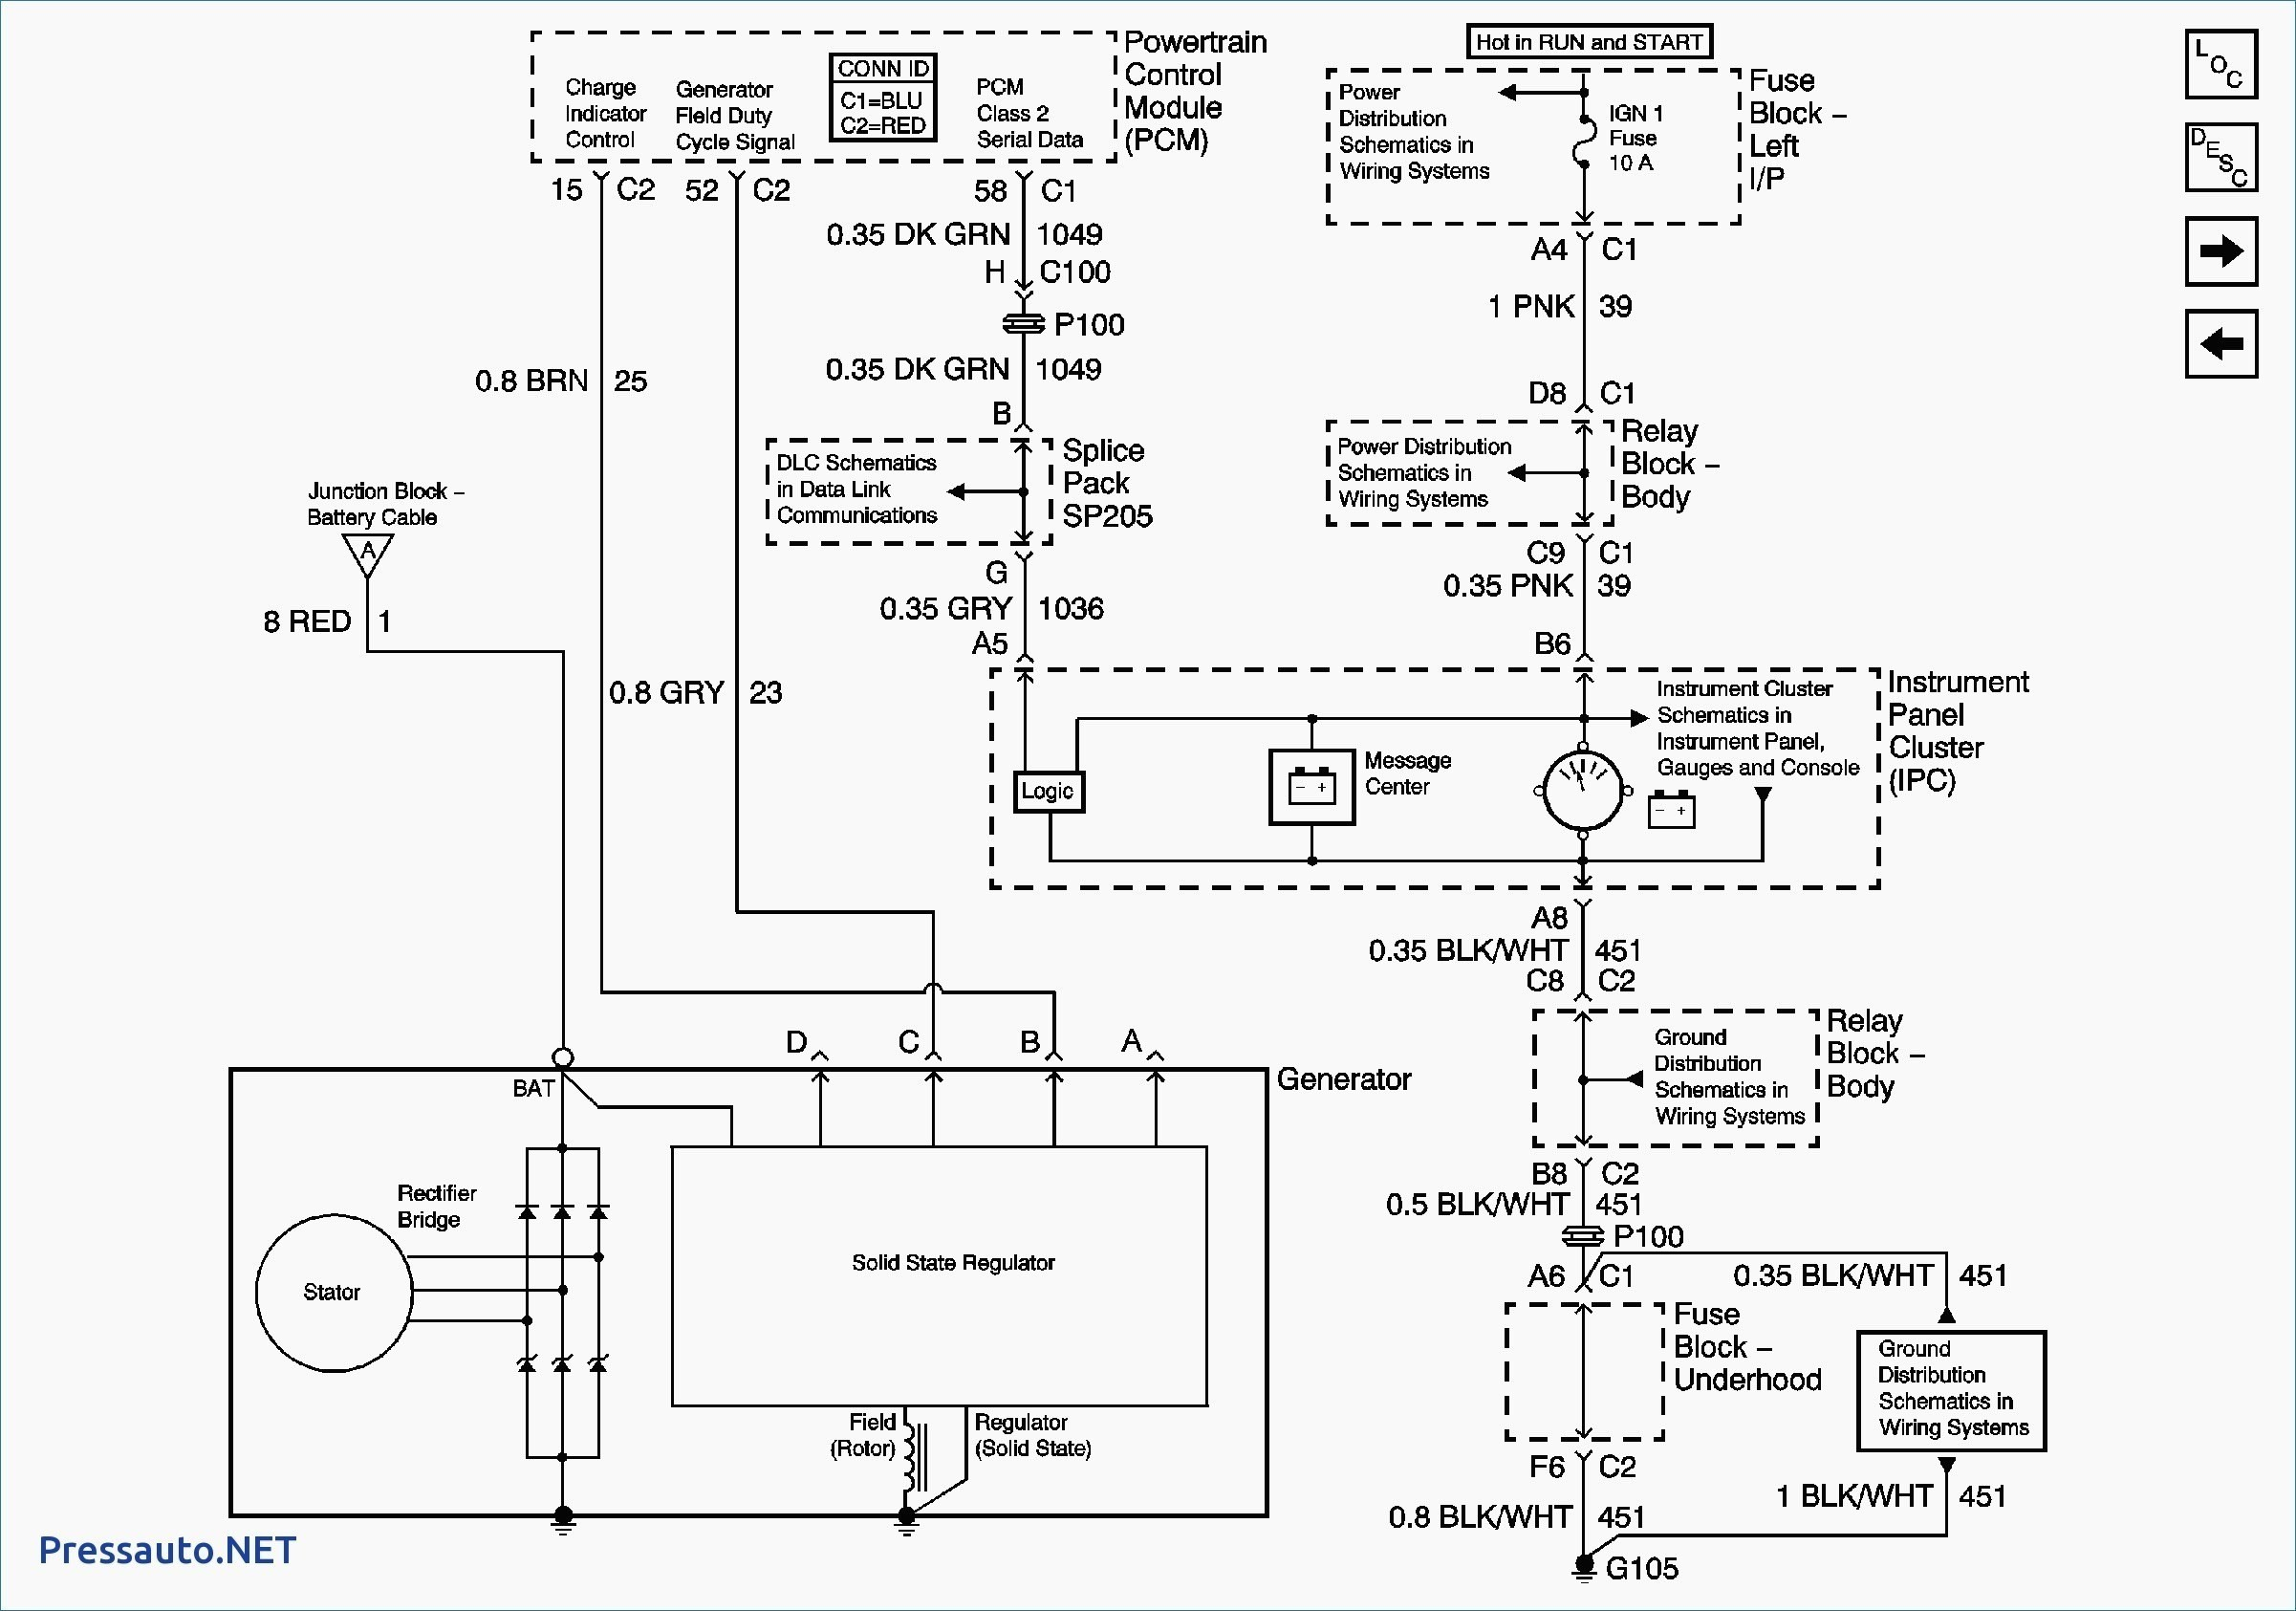 Car Alternator Voltage Regulator Circuit Diagram Bosch Alternator Wiring Diagram Holden Fresh Bosch Voltage Regulator Of Car Alternator Voltage Regulator Circuit Diagram Wiring Diagram Voltage Regulator to Alternator Save Alternator